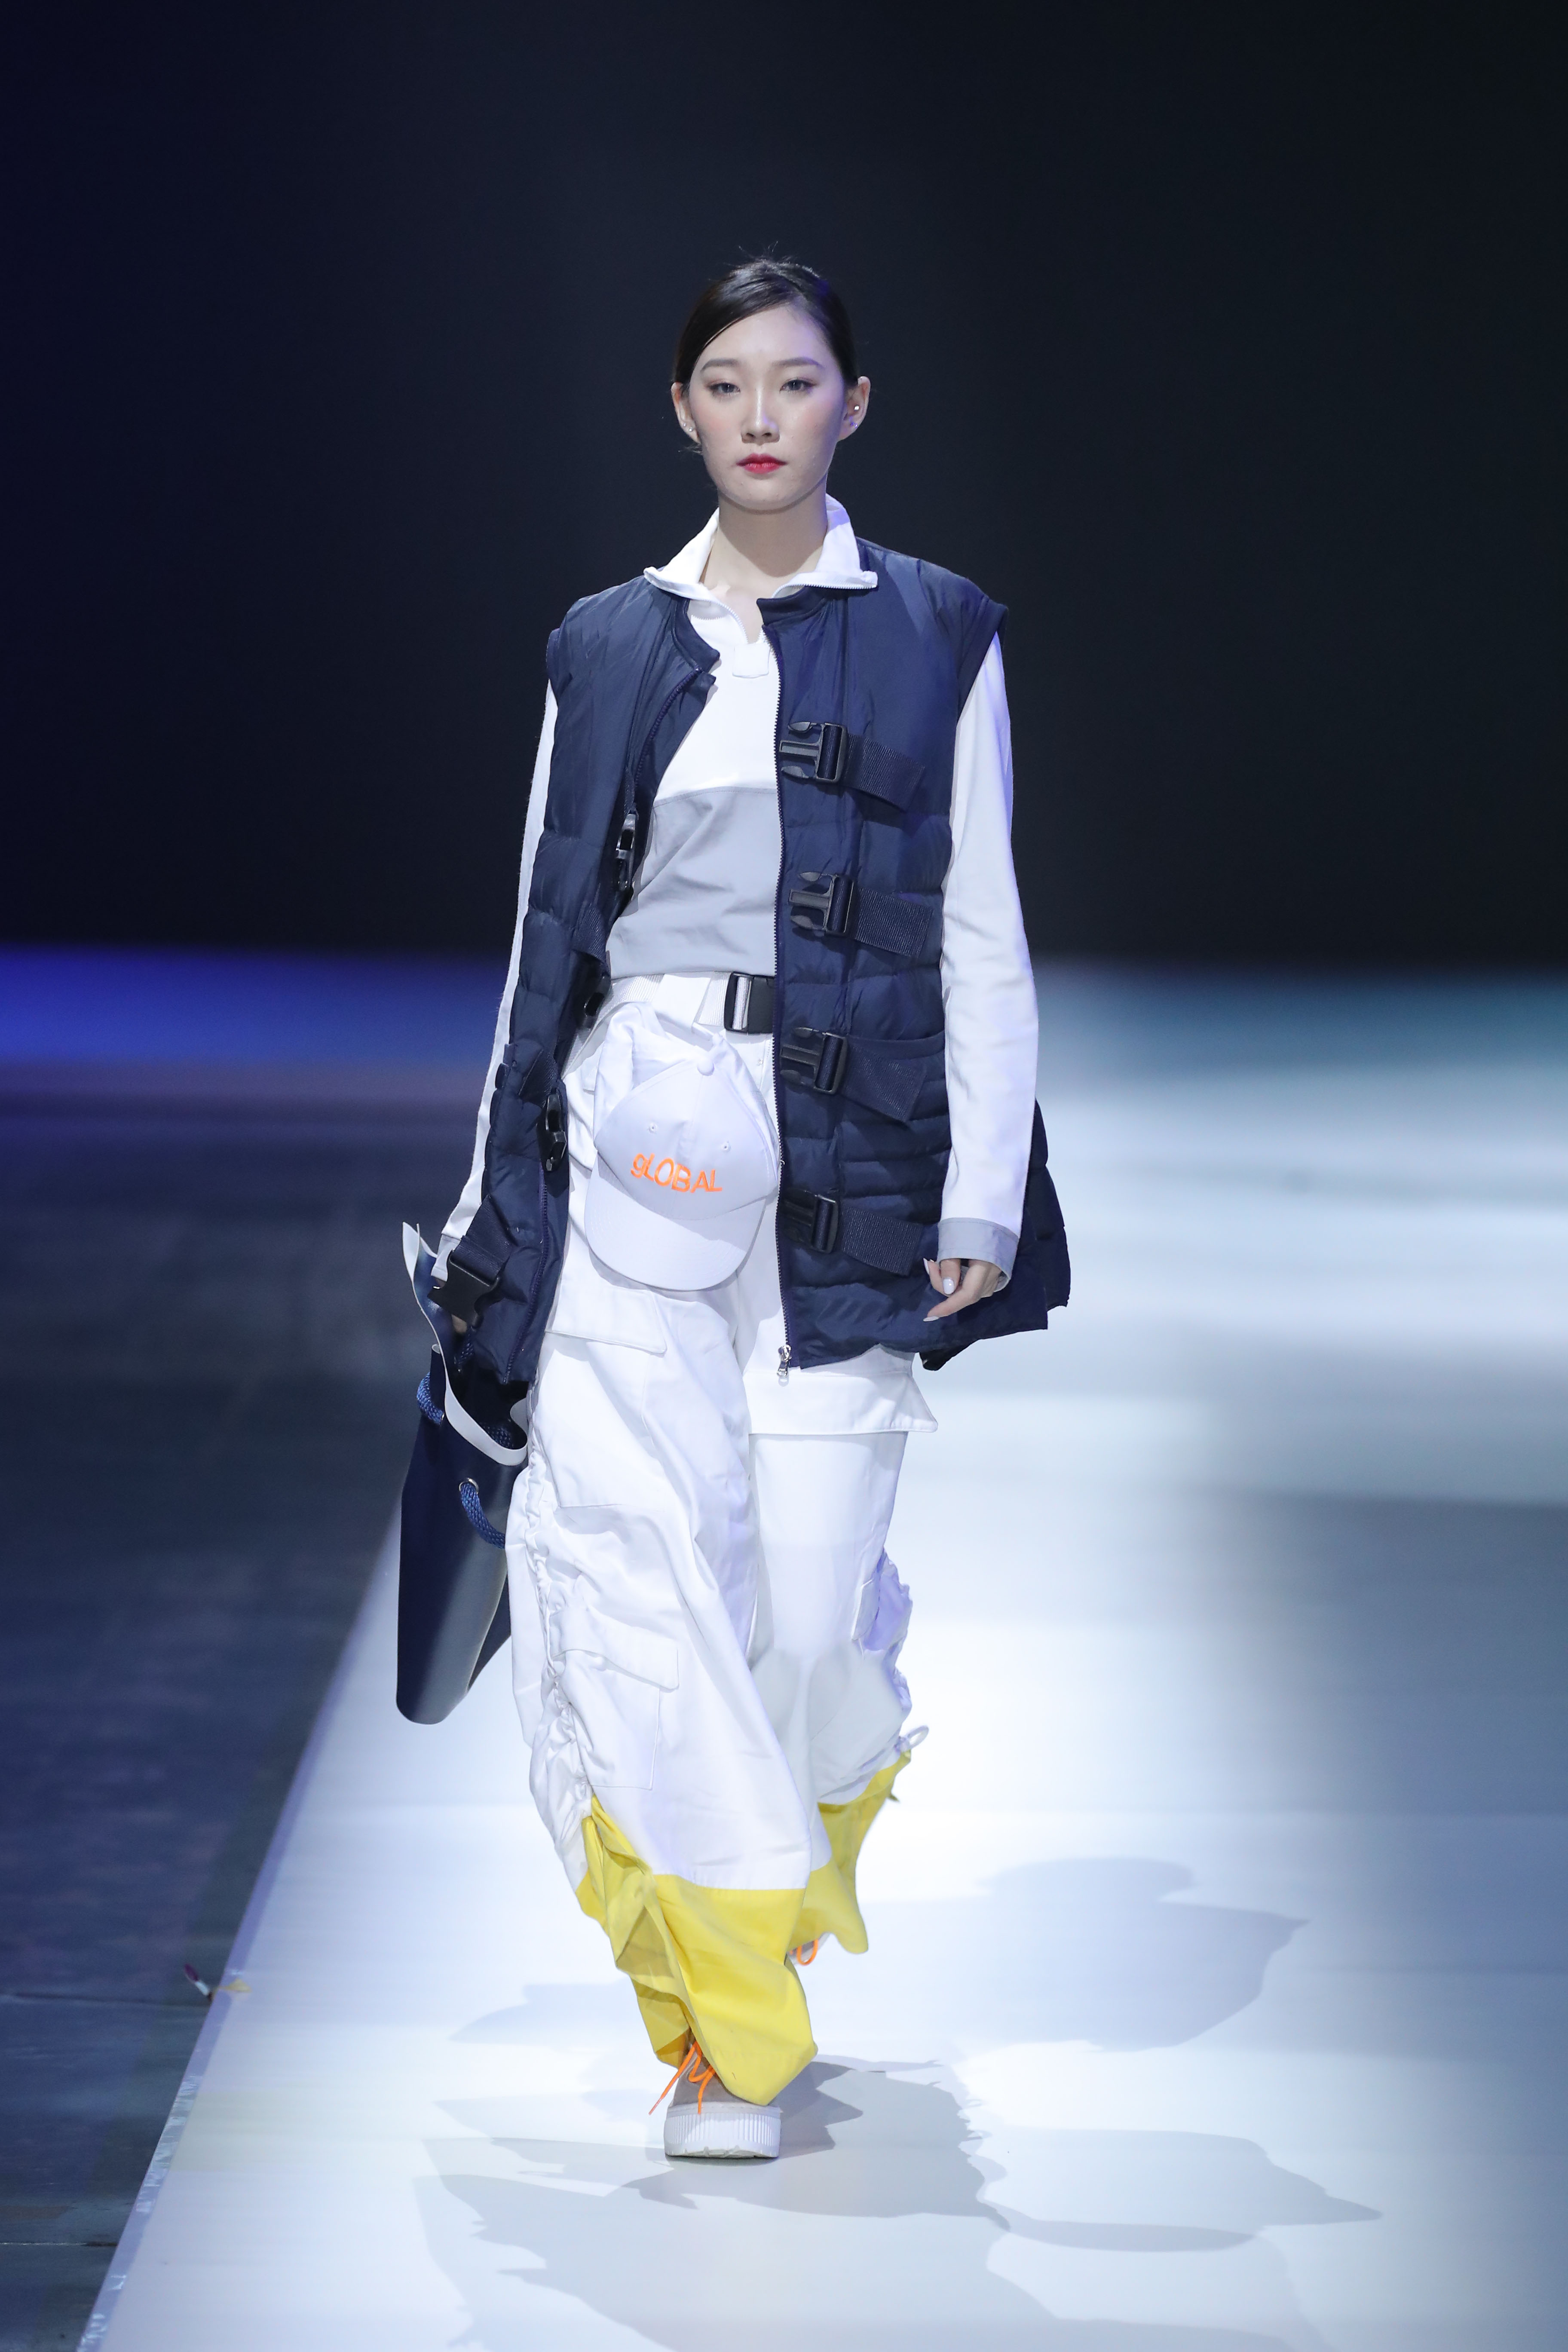 Model walking the runway during IYDC in China